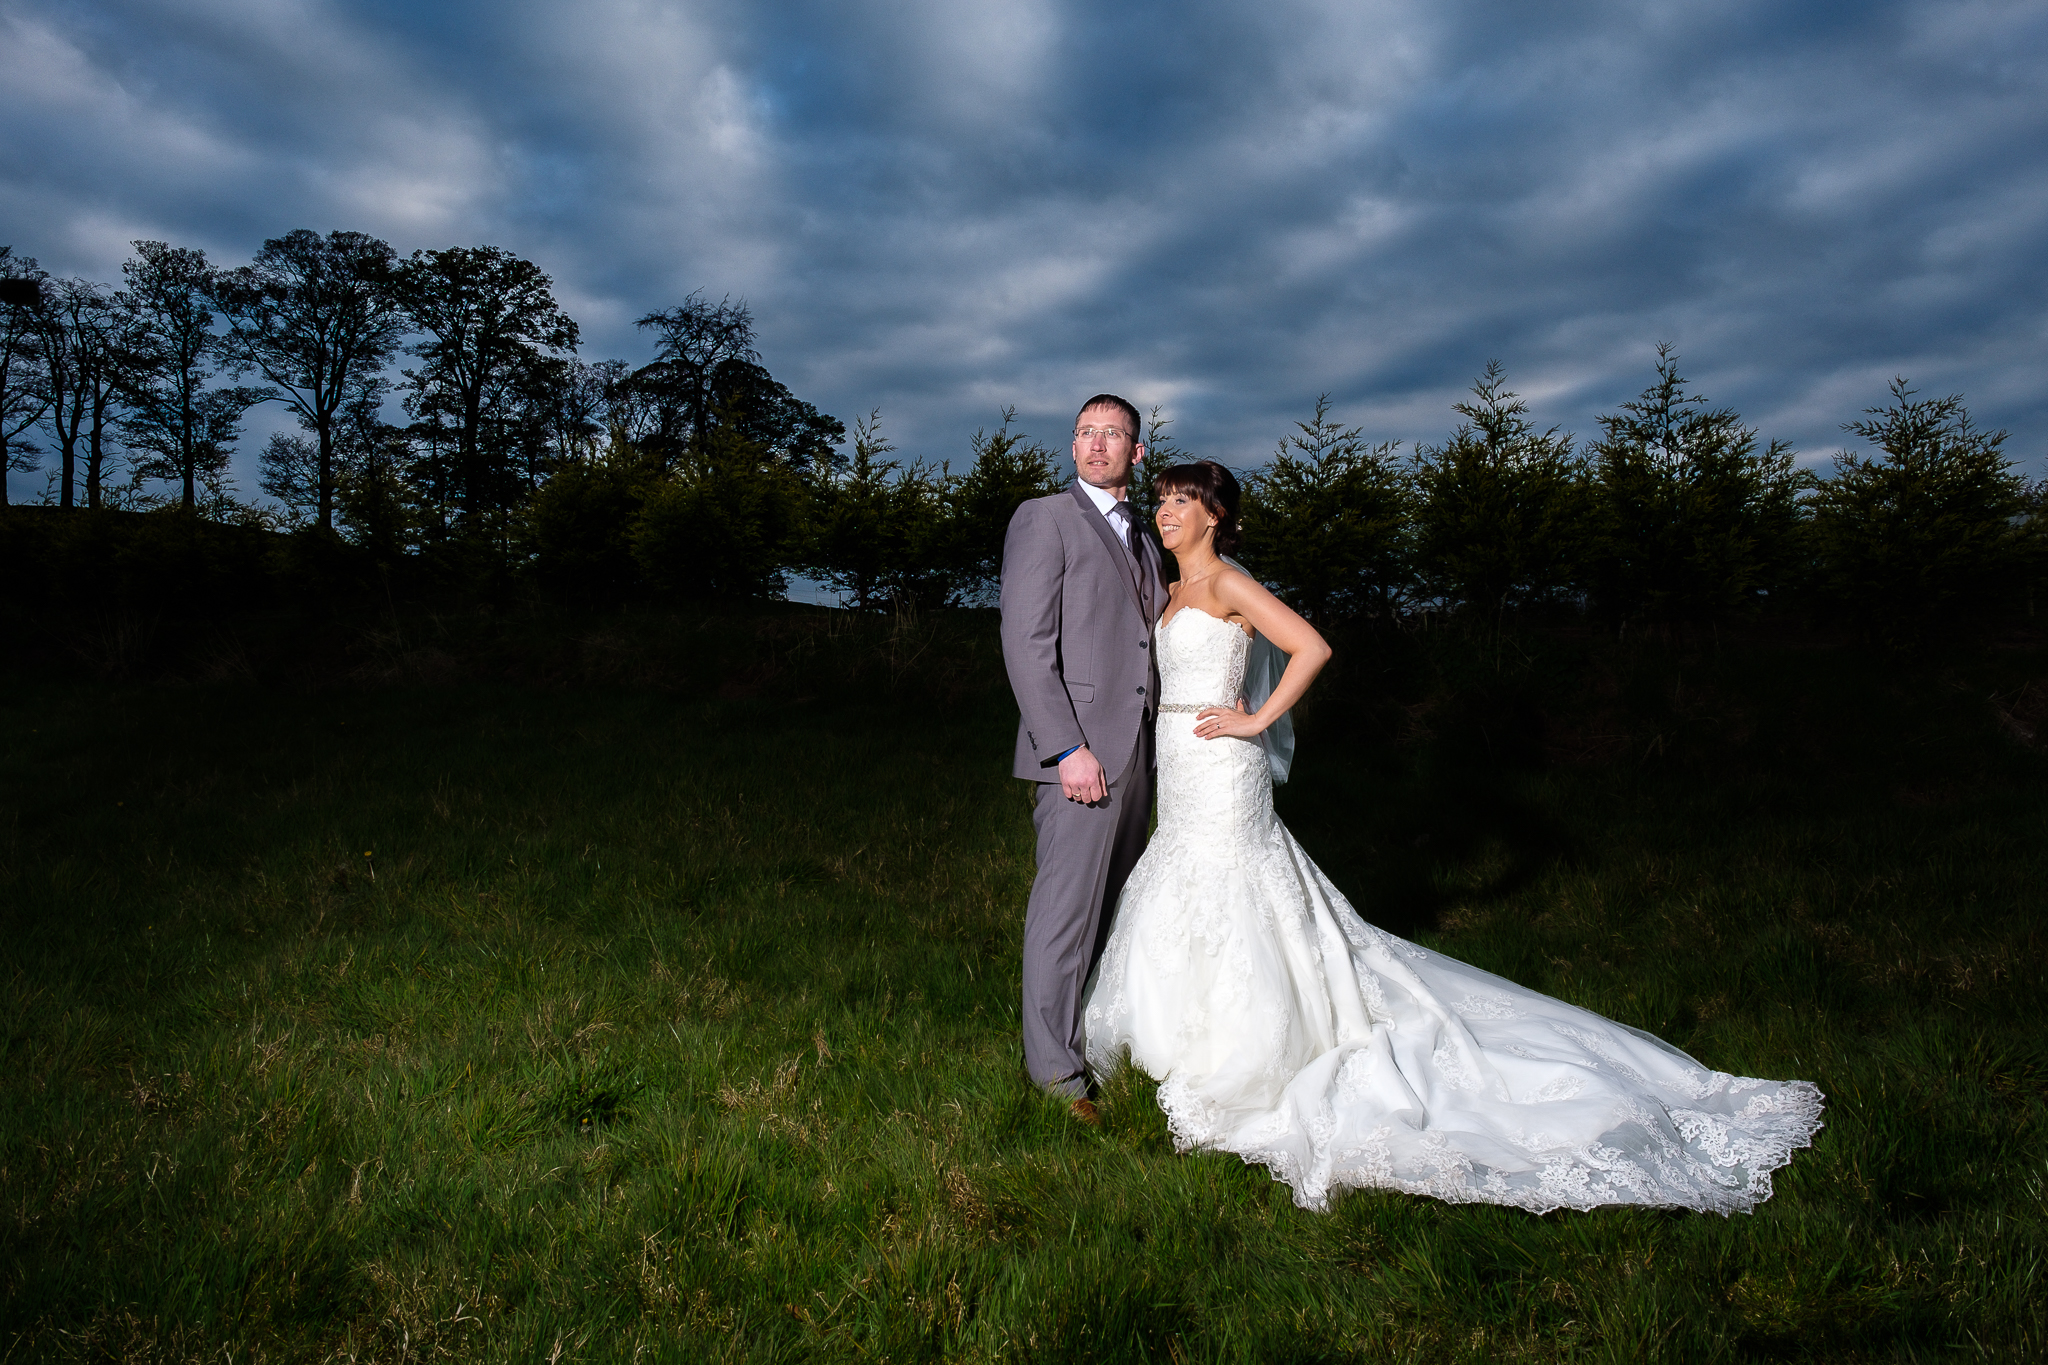 slaters wedding photographer stoke 01.jpg